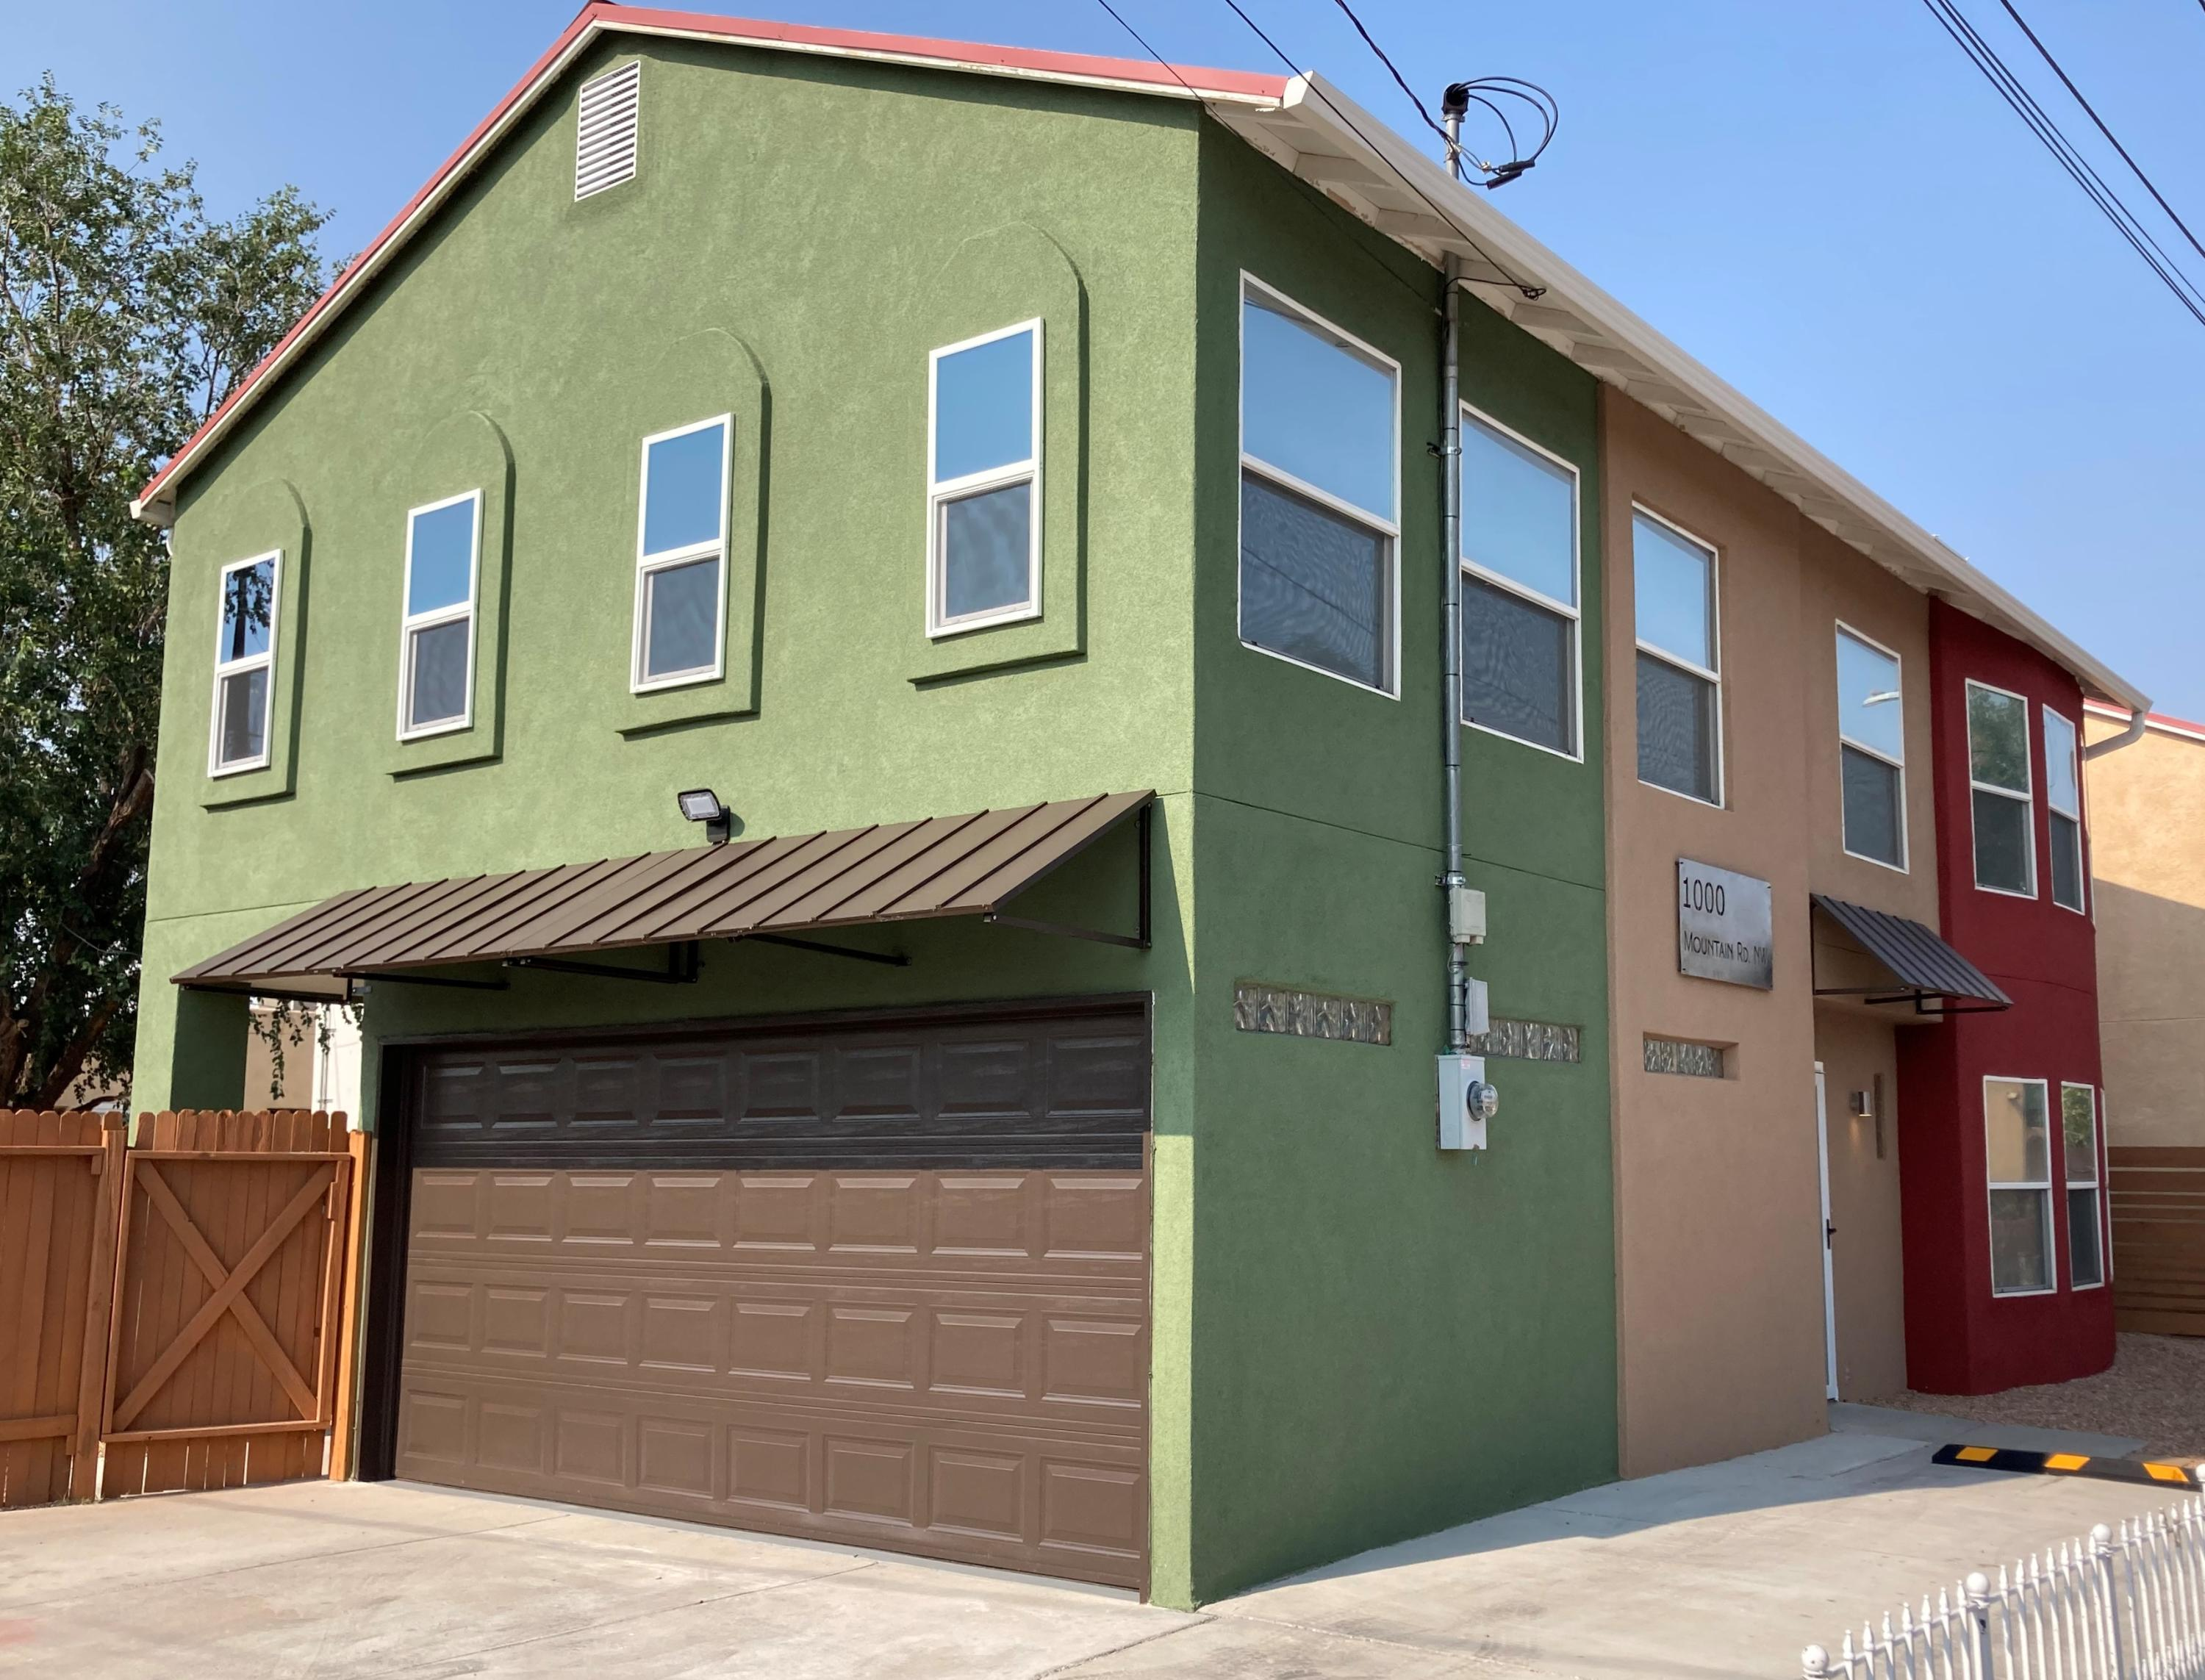 Downtown loft style living in a single family detached home! Ground-up remodel, including new kitchen with custom granite counters and stainless appliances. All new paint, texture, trim and hardware throughout. Two full baths upstairs and guest bath downstairs. Generous master suite, walk-in closets, and the large, fully finished 2-car attached garage is a rare find in the downtown area. Low maintenance pro-panel metal roof and new large capacity cooler. Awesome location just steps away from multiple coffee shops, restaurants, a bakery and a grocery store. Take a short walk to Old Town, Sawmill Market, museums, and multiple award winning breweries. Three bedrooms are perfect for a family, home office, or vacation rental.